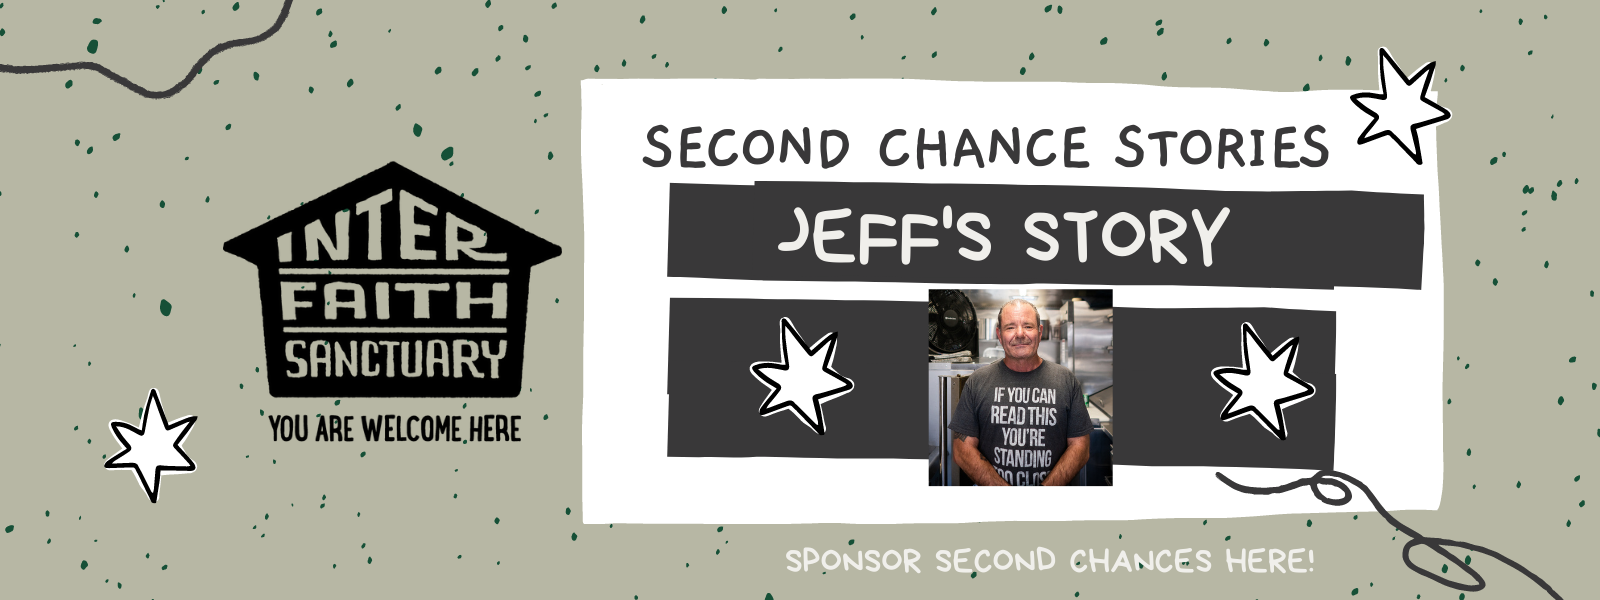 Become a SECOND CHANCE sponsor today! image